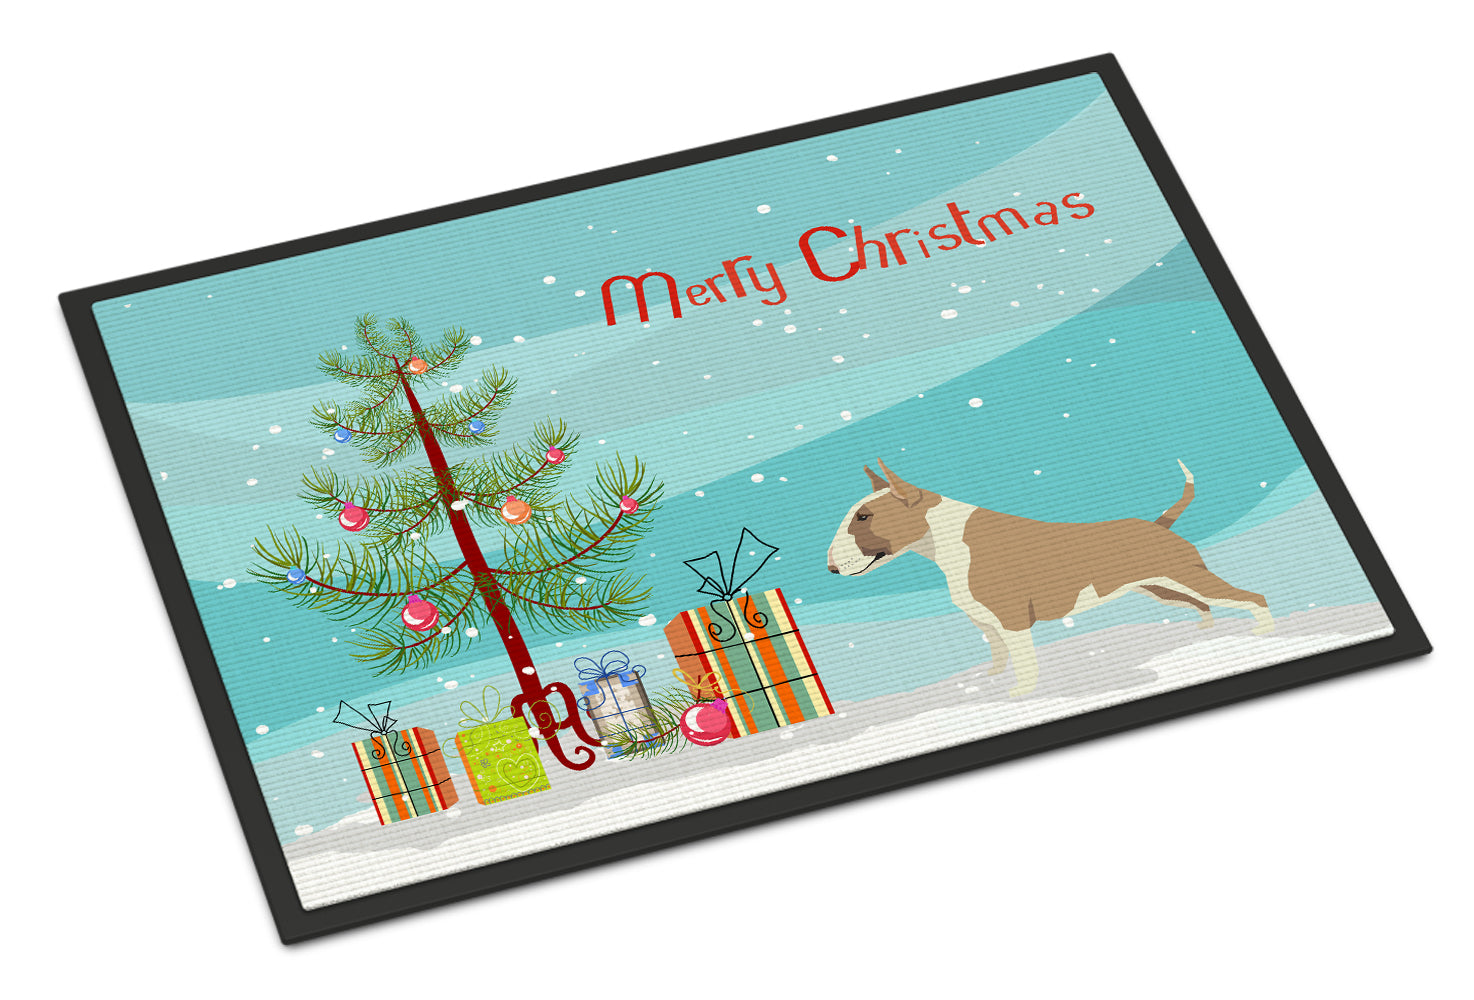 Fawn and White Bull Terrier Christmas Tree Indoor or Outdoor Mat 18x27 CK3528MAT by Caroline's Treasures